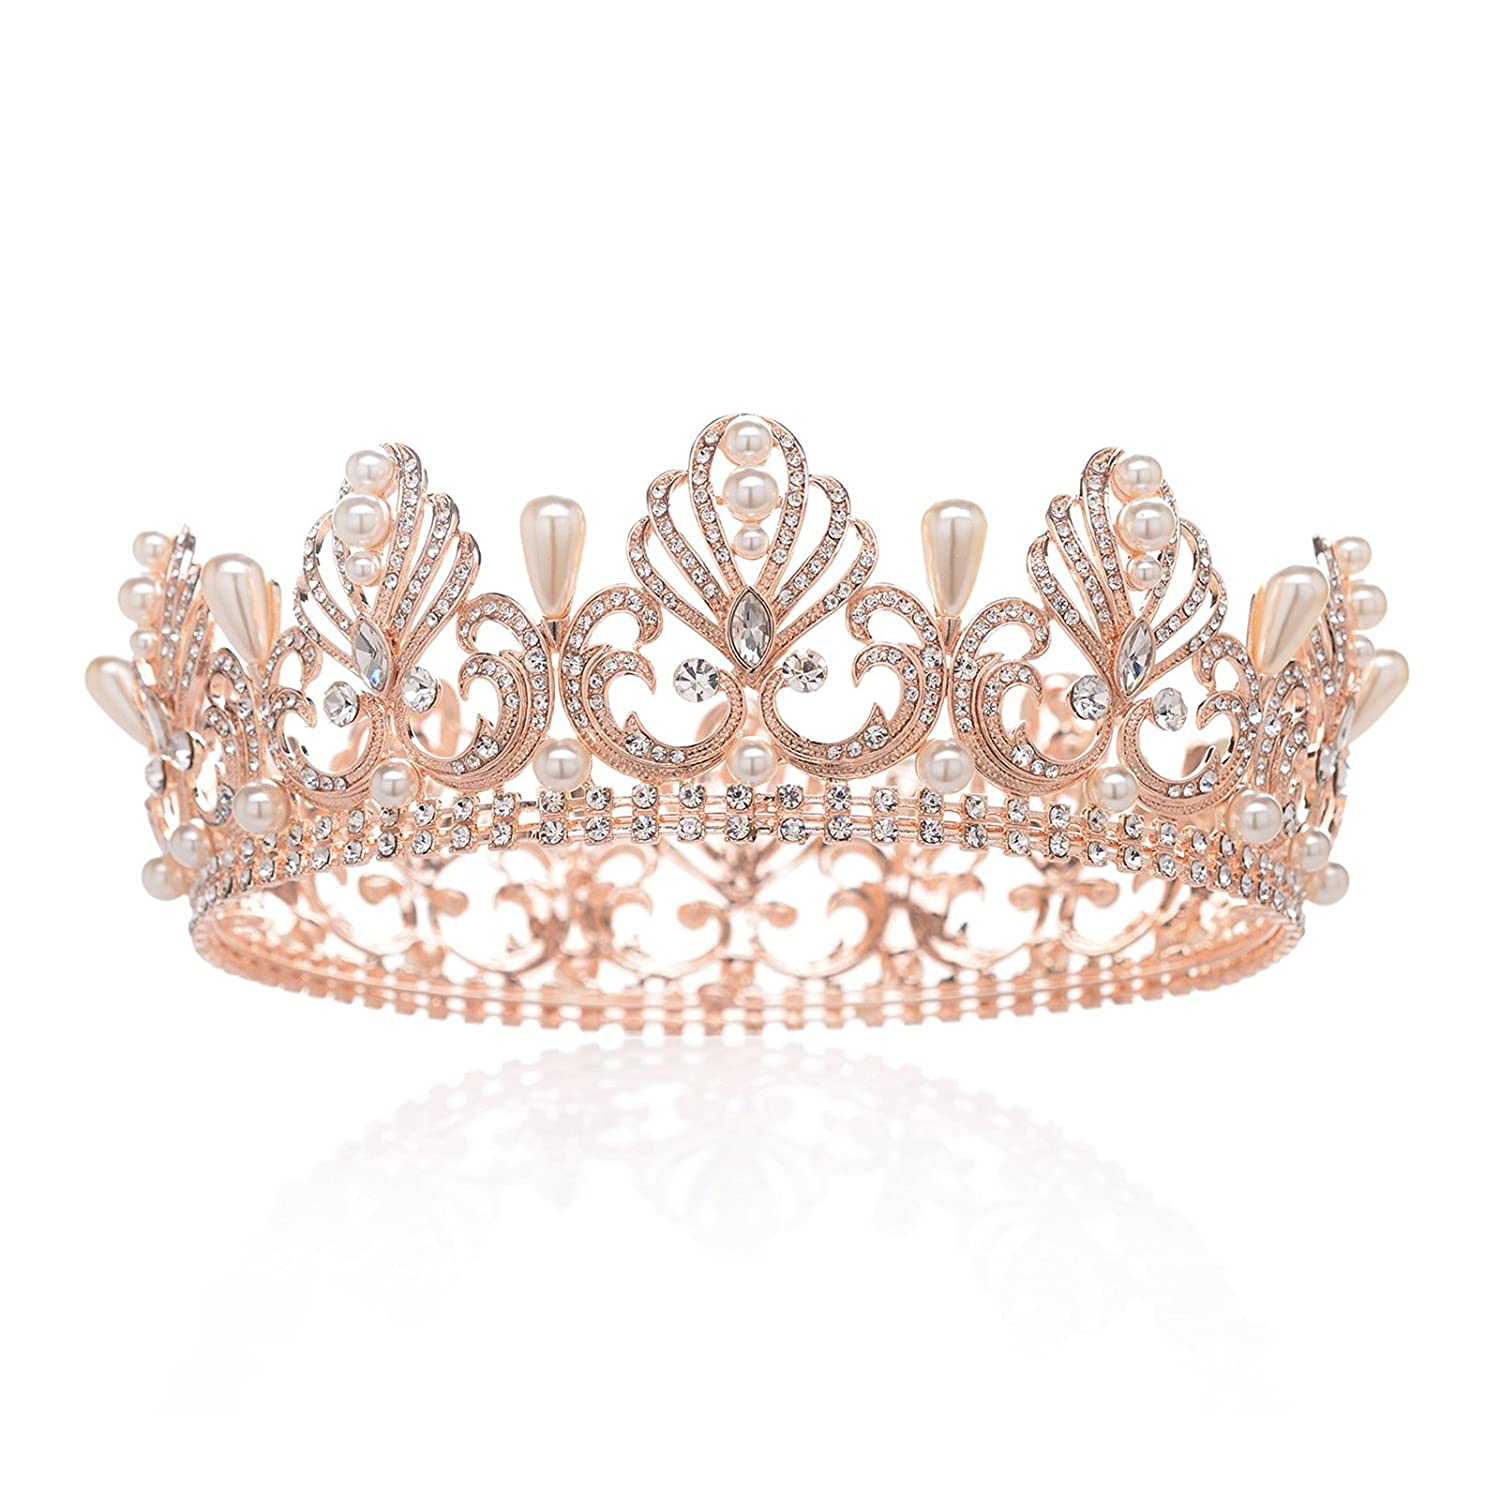 SWEETV Rose Gold Tiara Full Round Crown Crystal Party Headpieces Pearl Hair Jewelry for Women SVCHG17033C1007